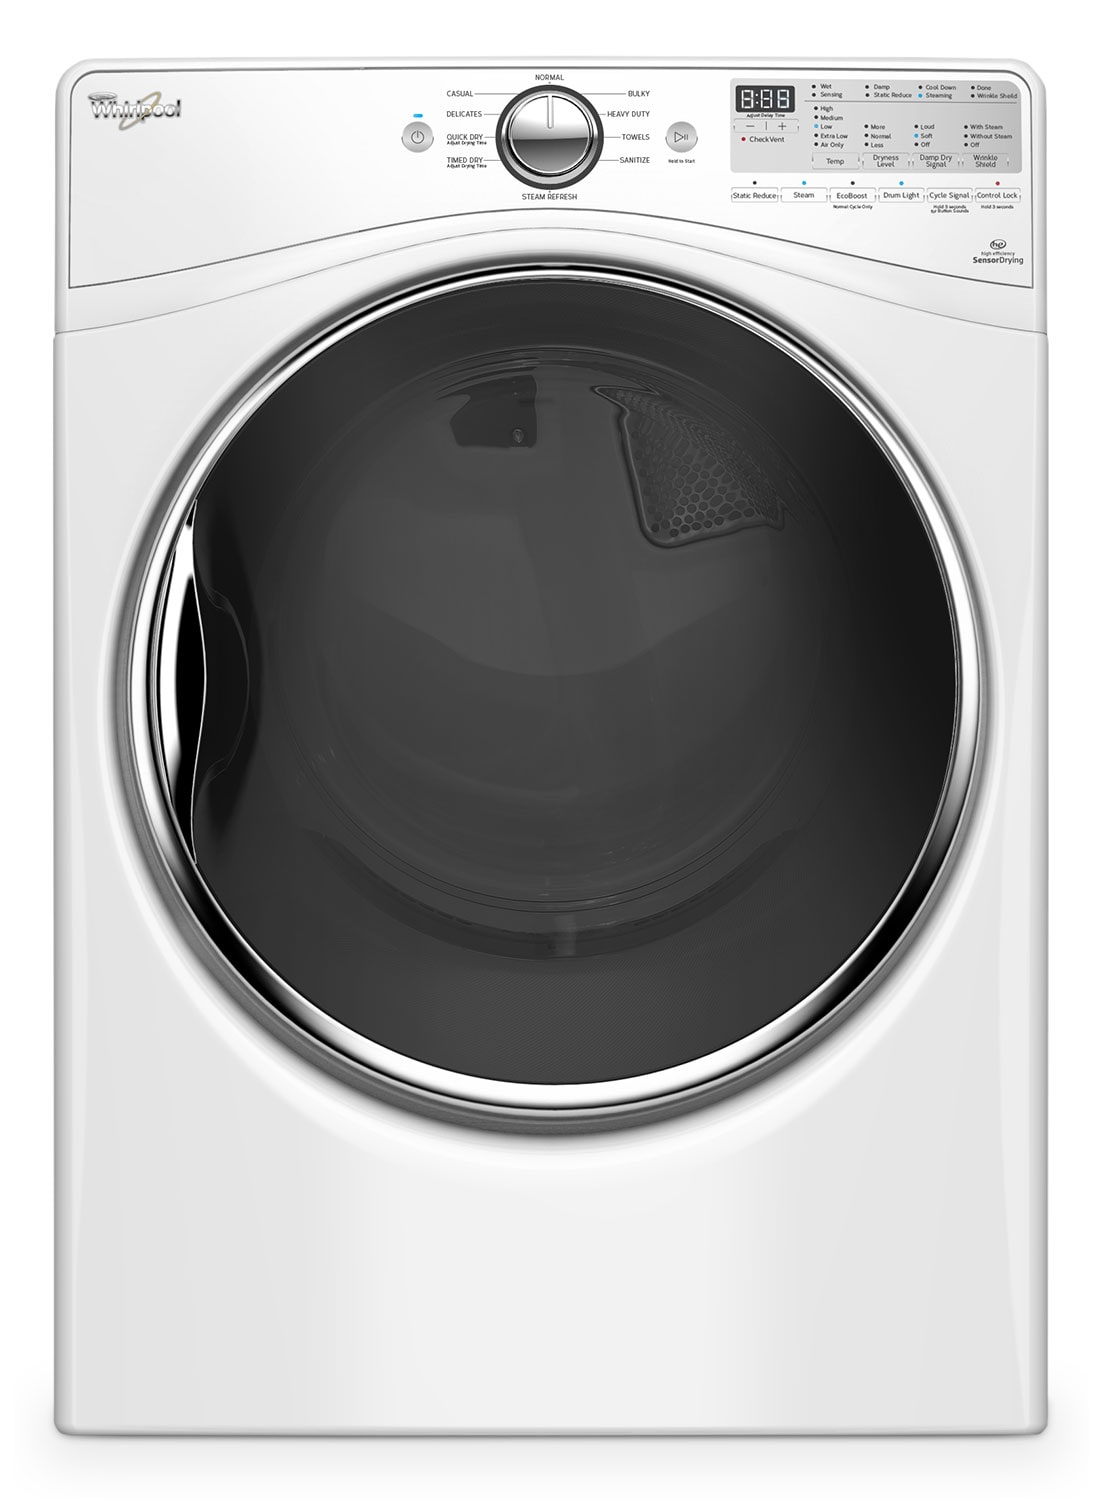 Washers and Dryers - Whirpool White Gas Dryer (7.4 Cu. Ft.) - WGD92HEFW